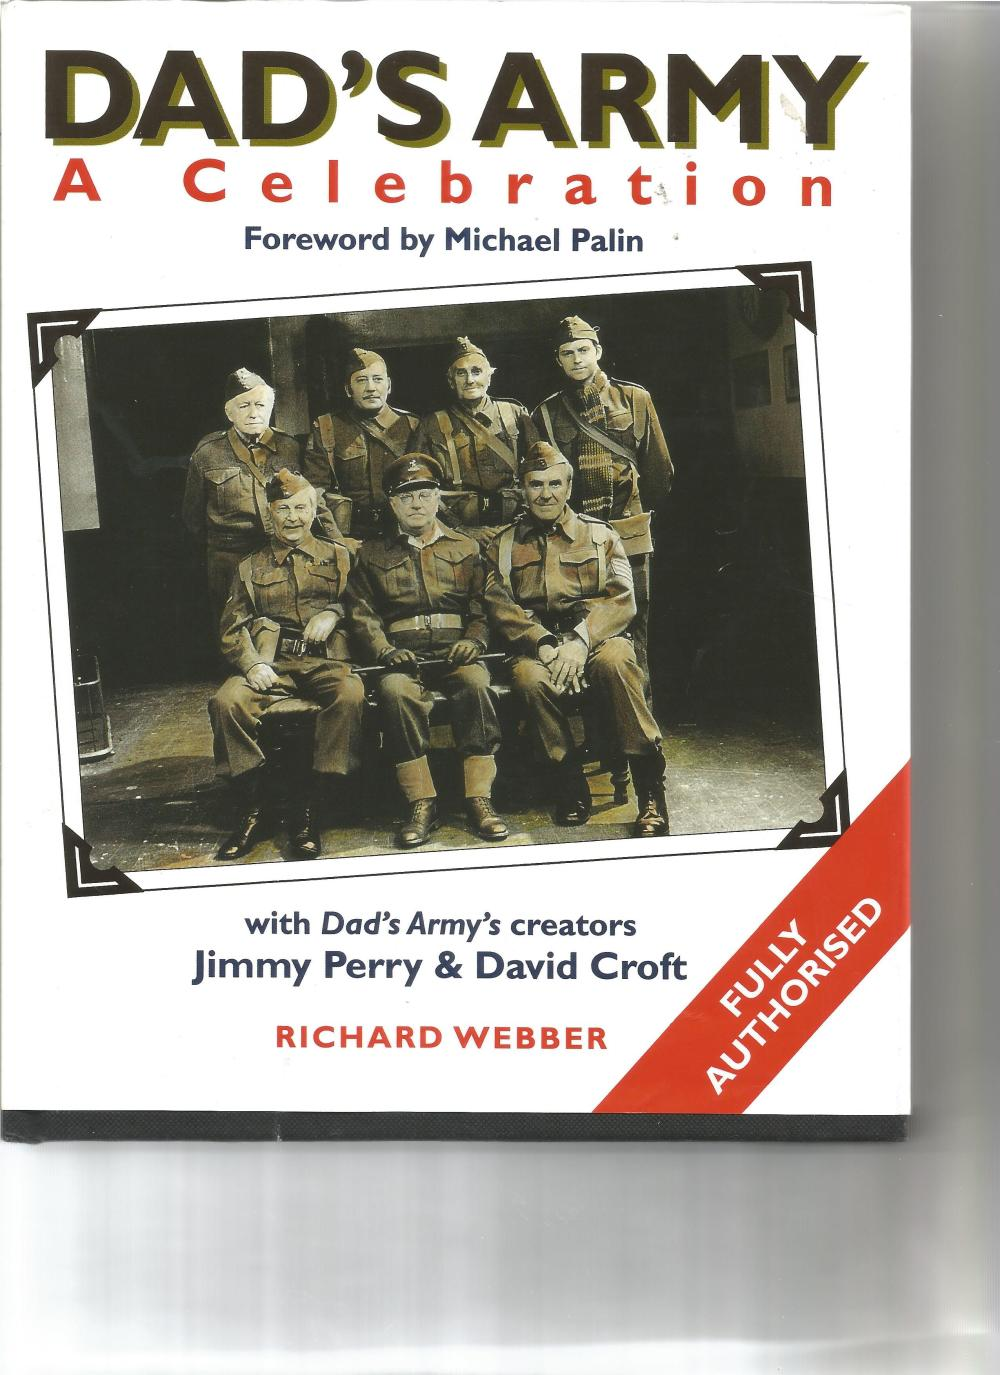 Clive Dunn, Ian Lavender, Bill Pertwee, Frank Williams and Colin Bean signed Dad's Army A